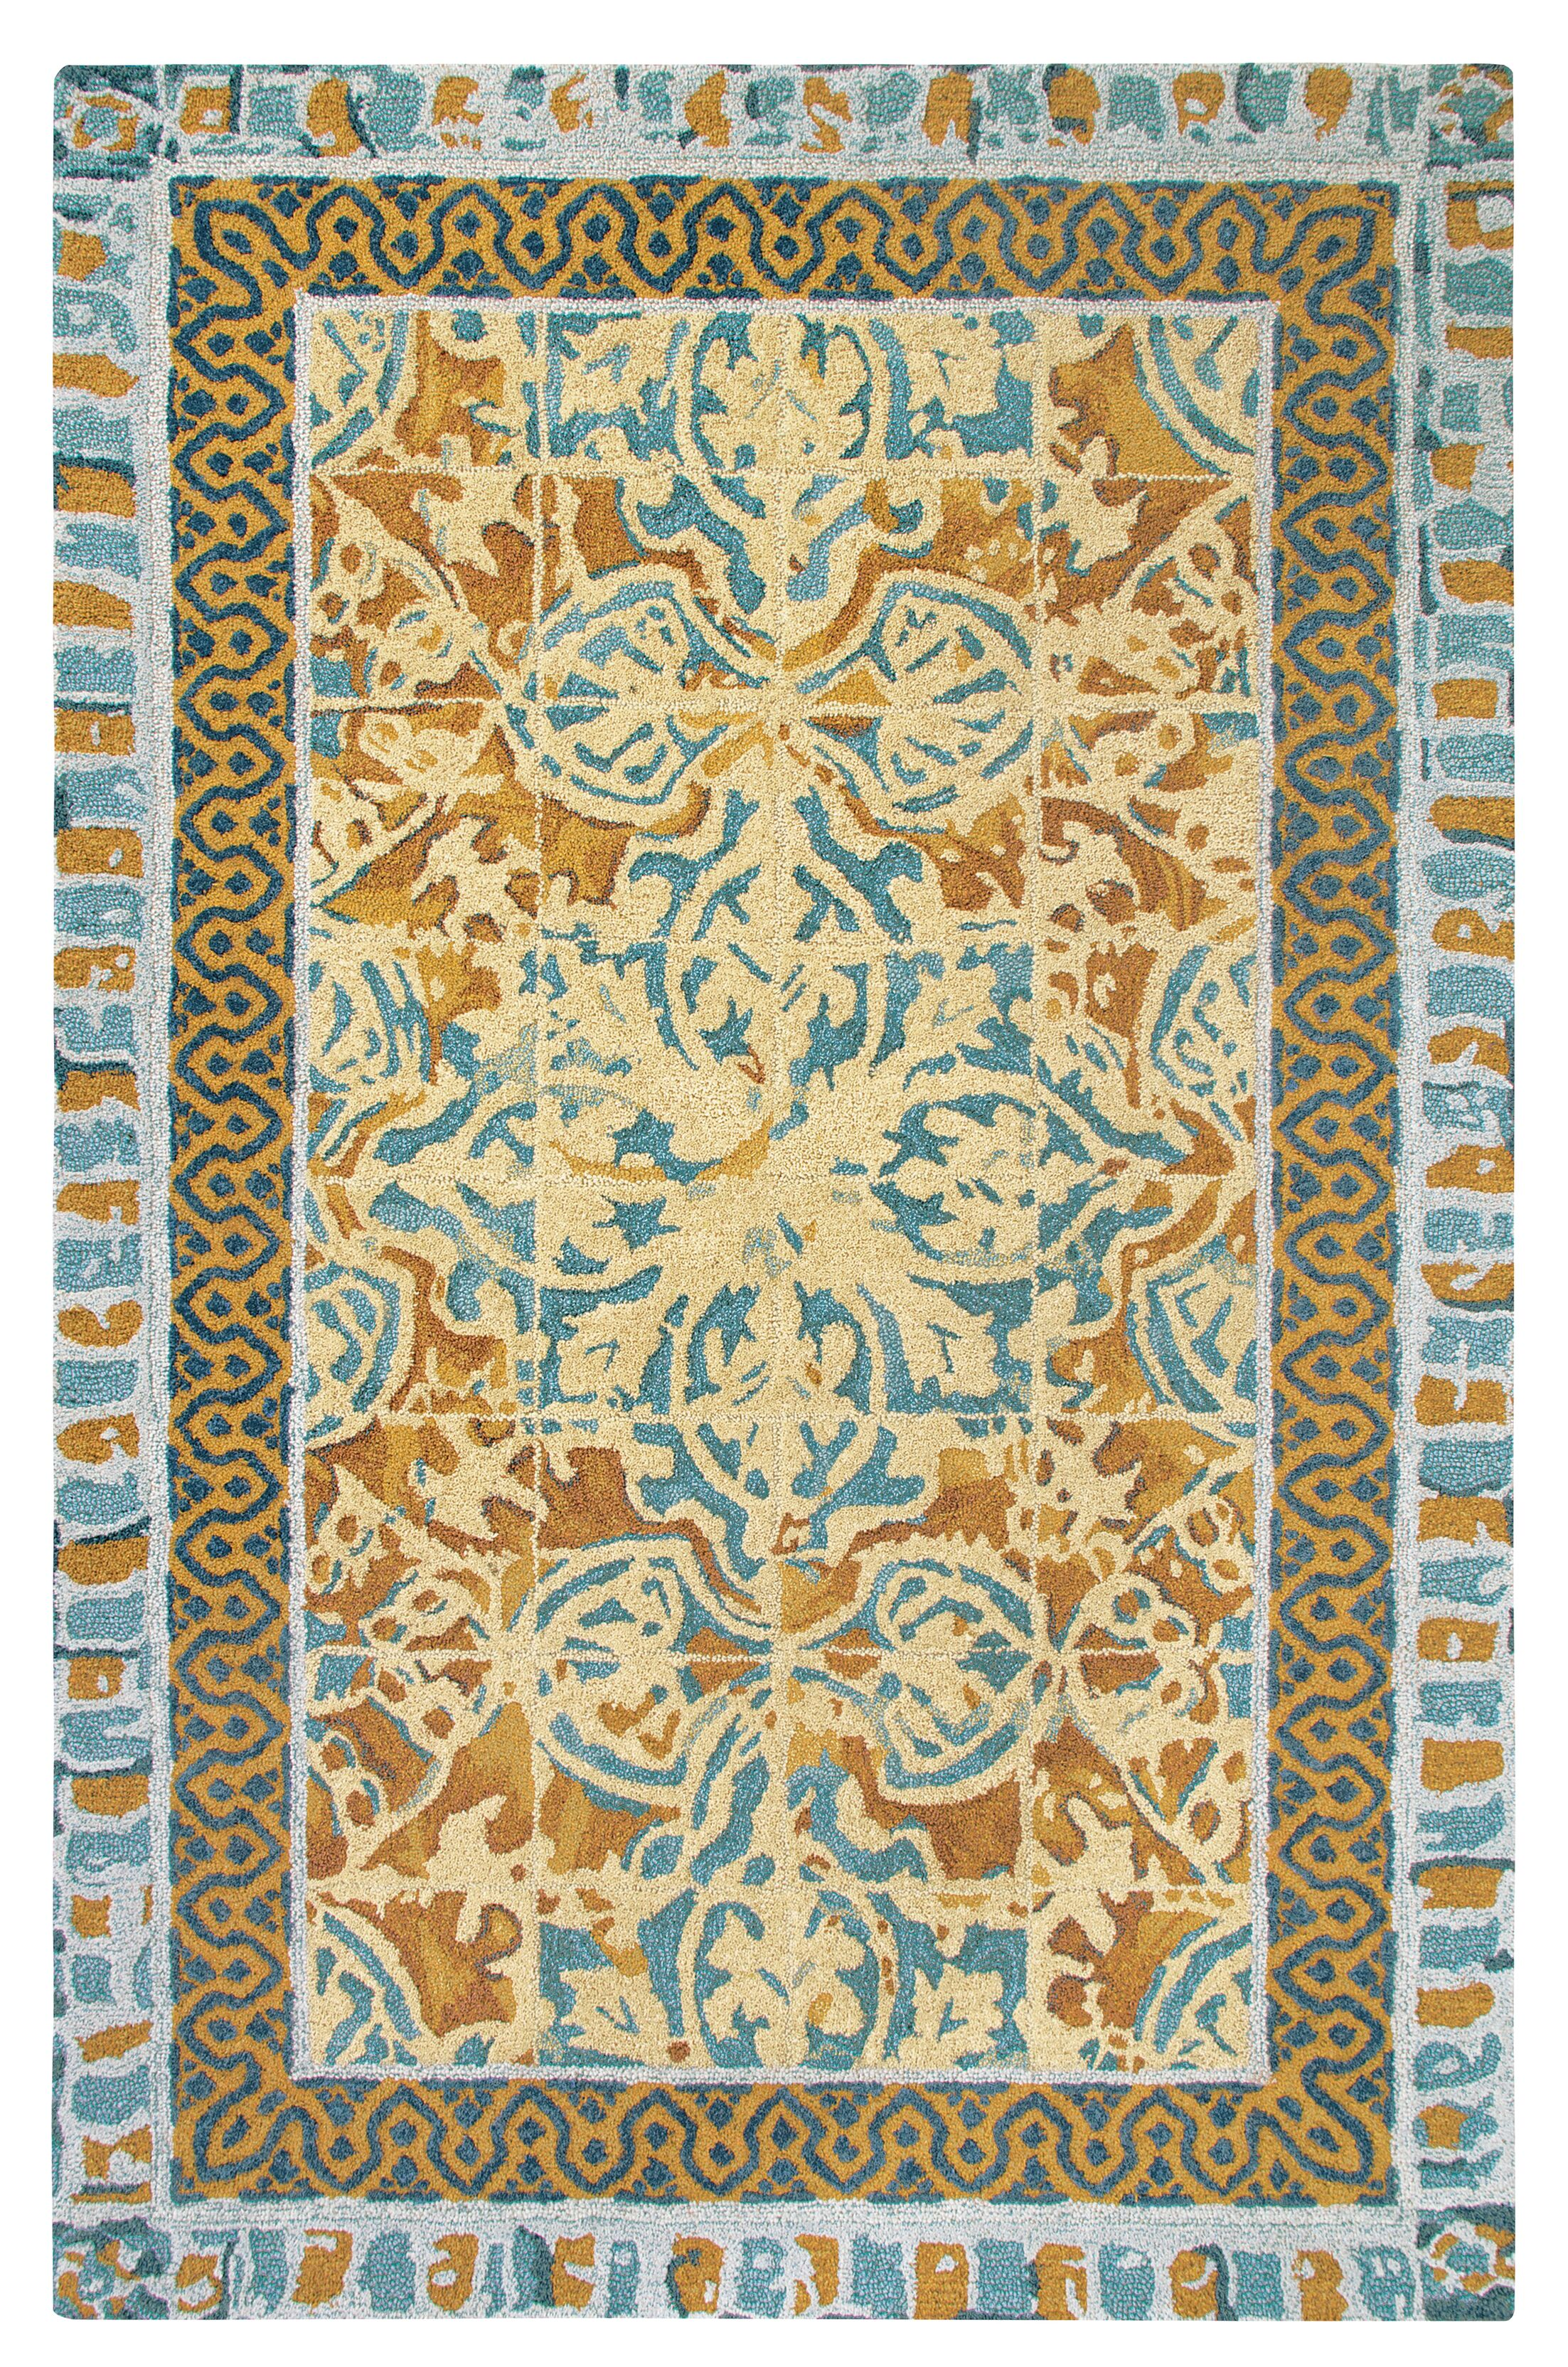 Tuscan Tile Hand-Tufted Blue/Beige Area Rug Rug Size: Rectangle 9' x 13'